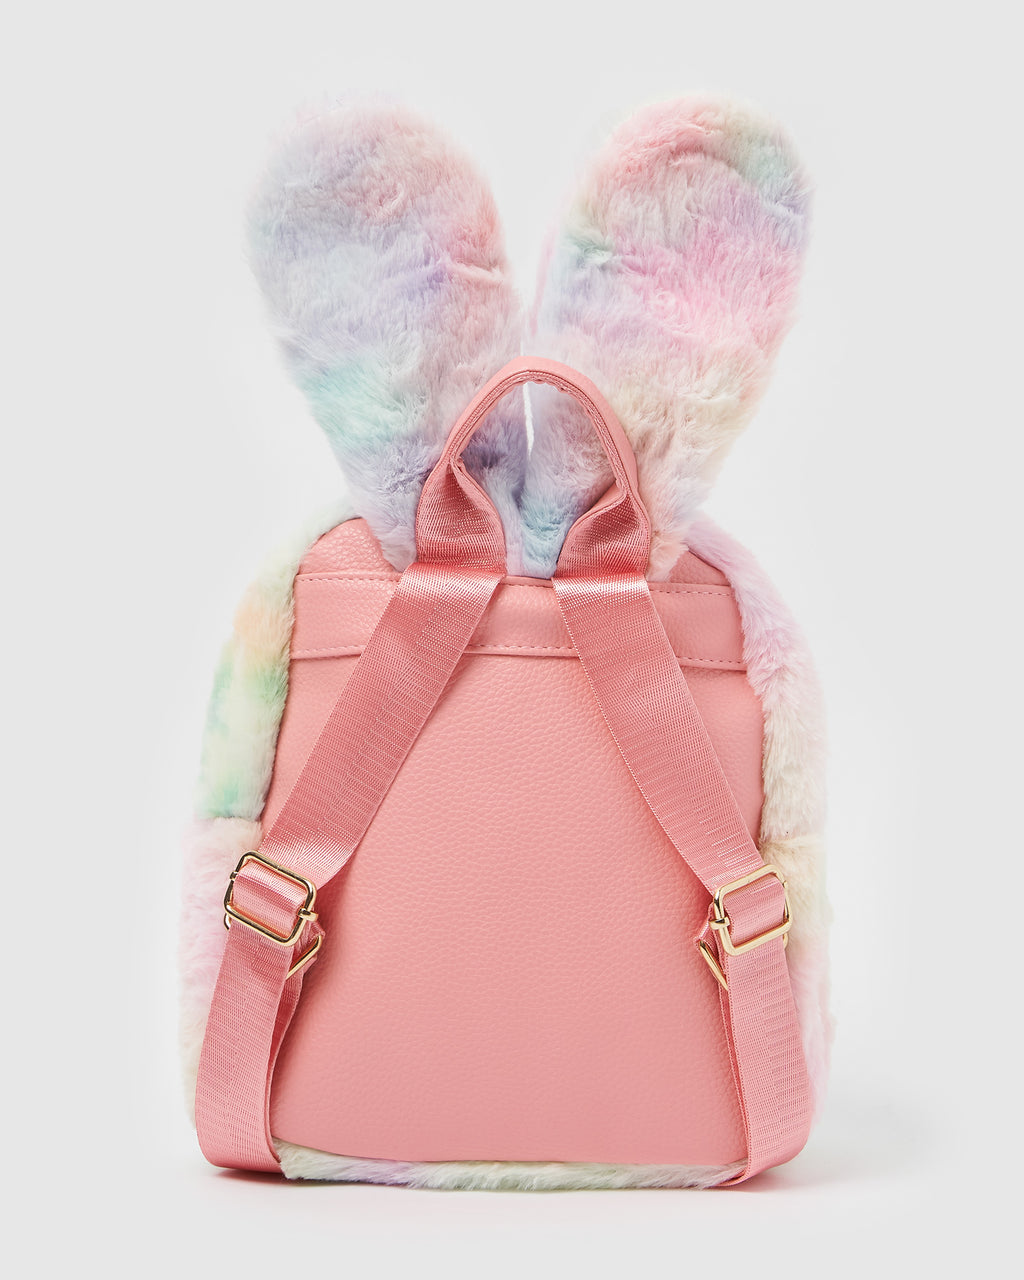 Izoa Kids Peta Rabbit Backpack Multi